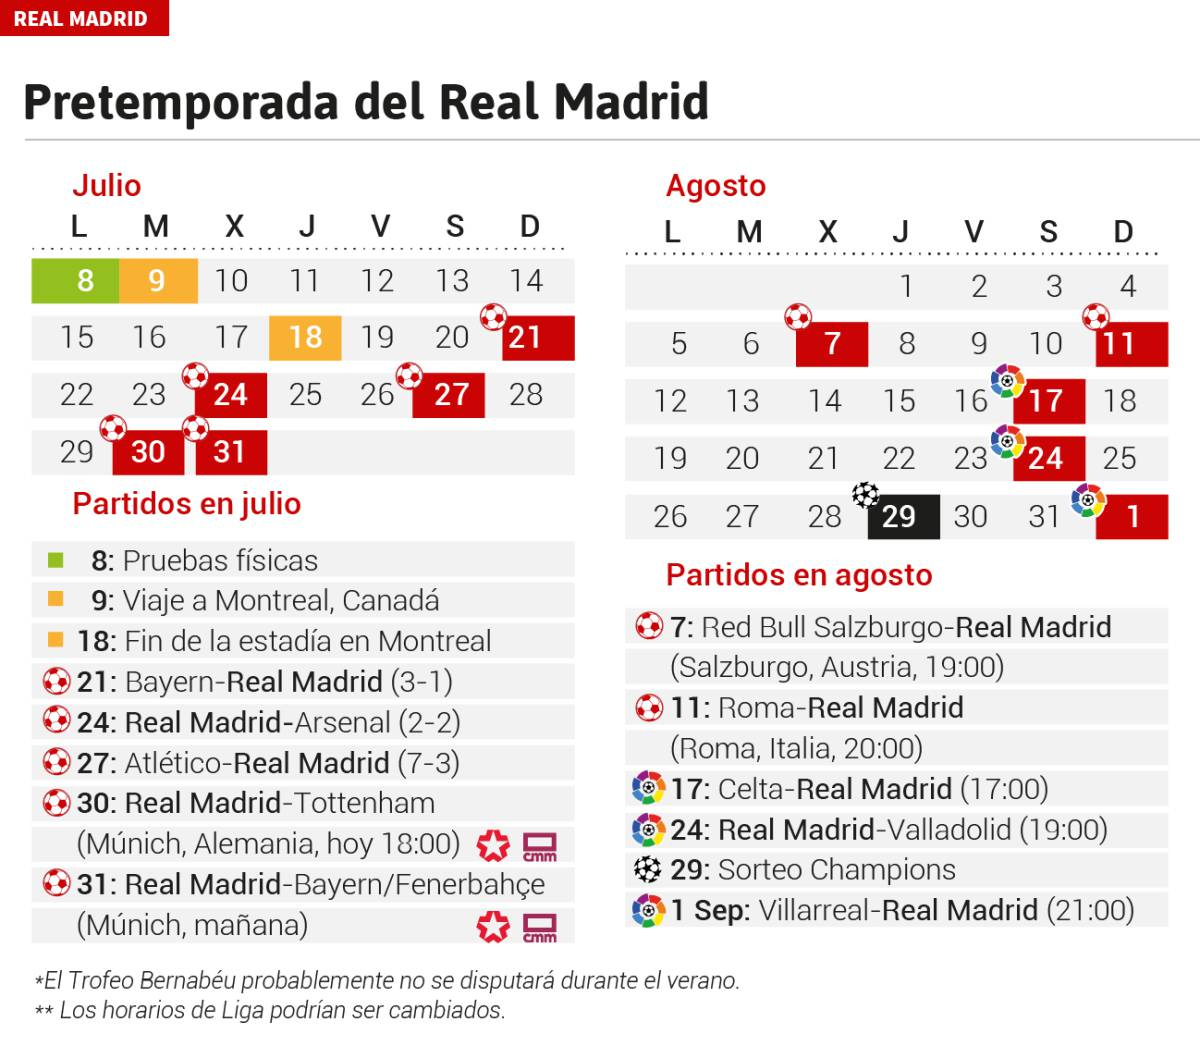 Calendario Del Real.Amistoso Pretemporada Oficial El Real Madrid Jugara El